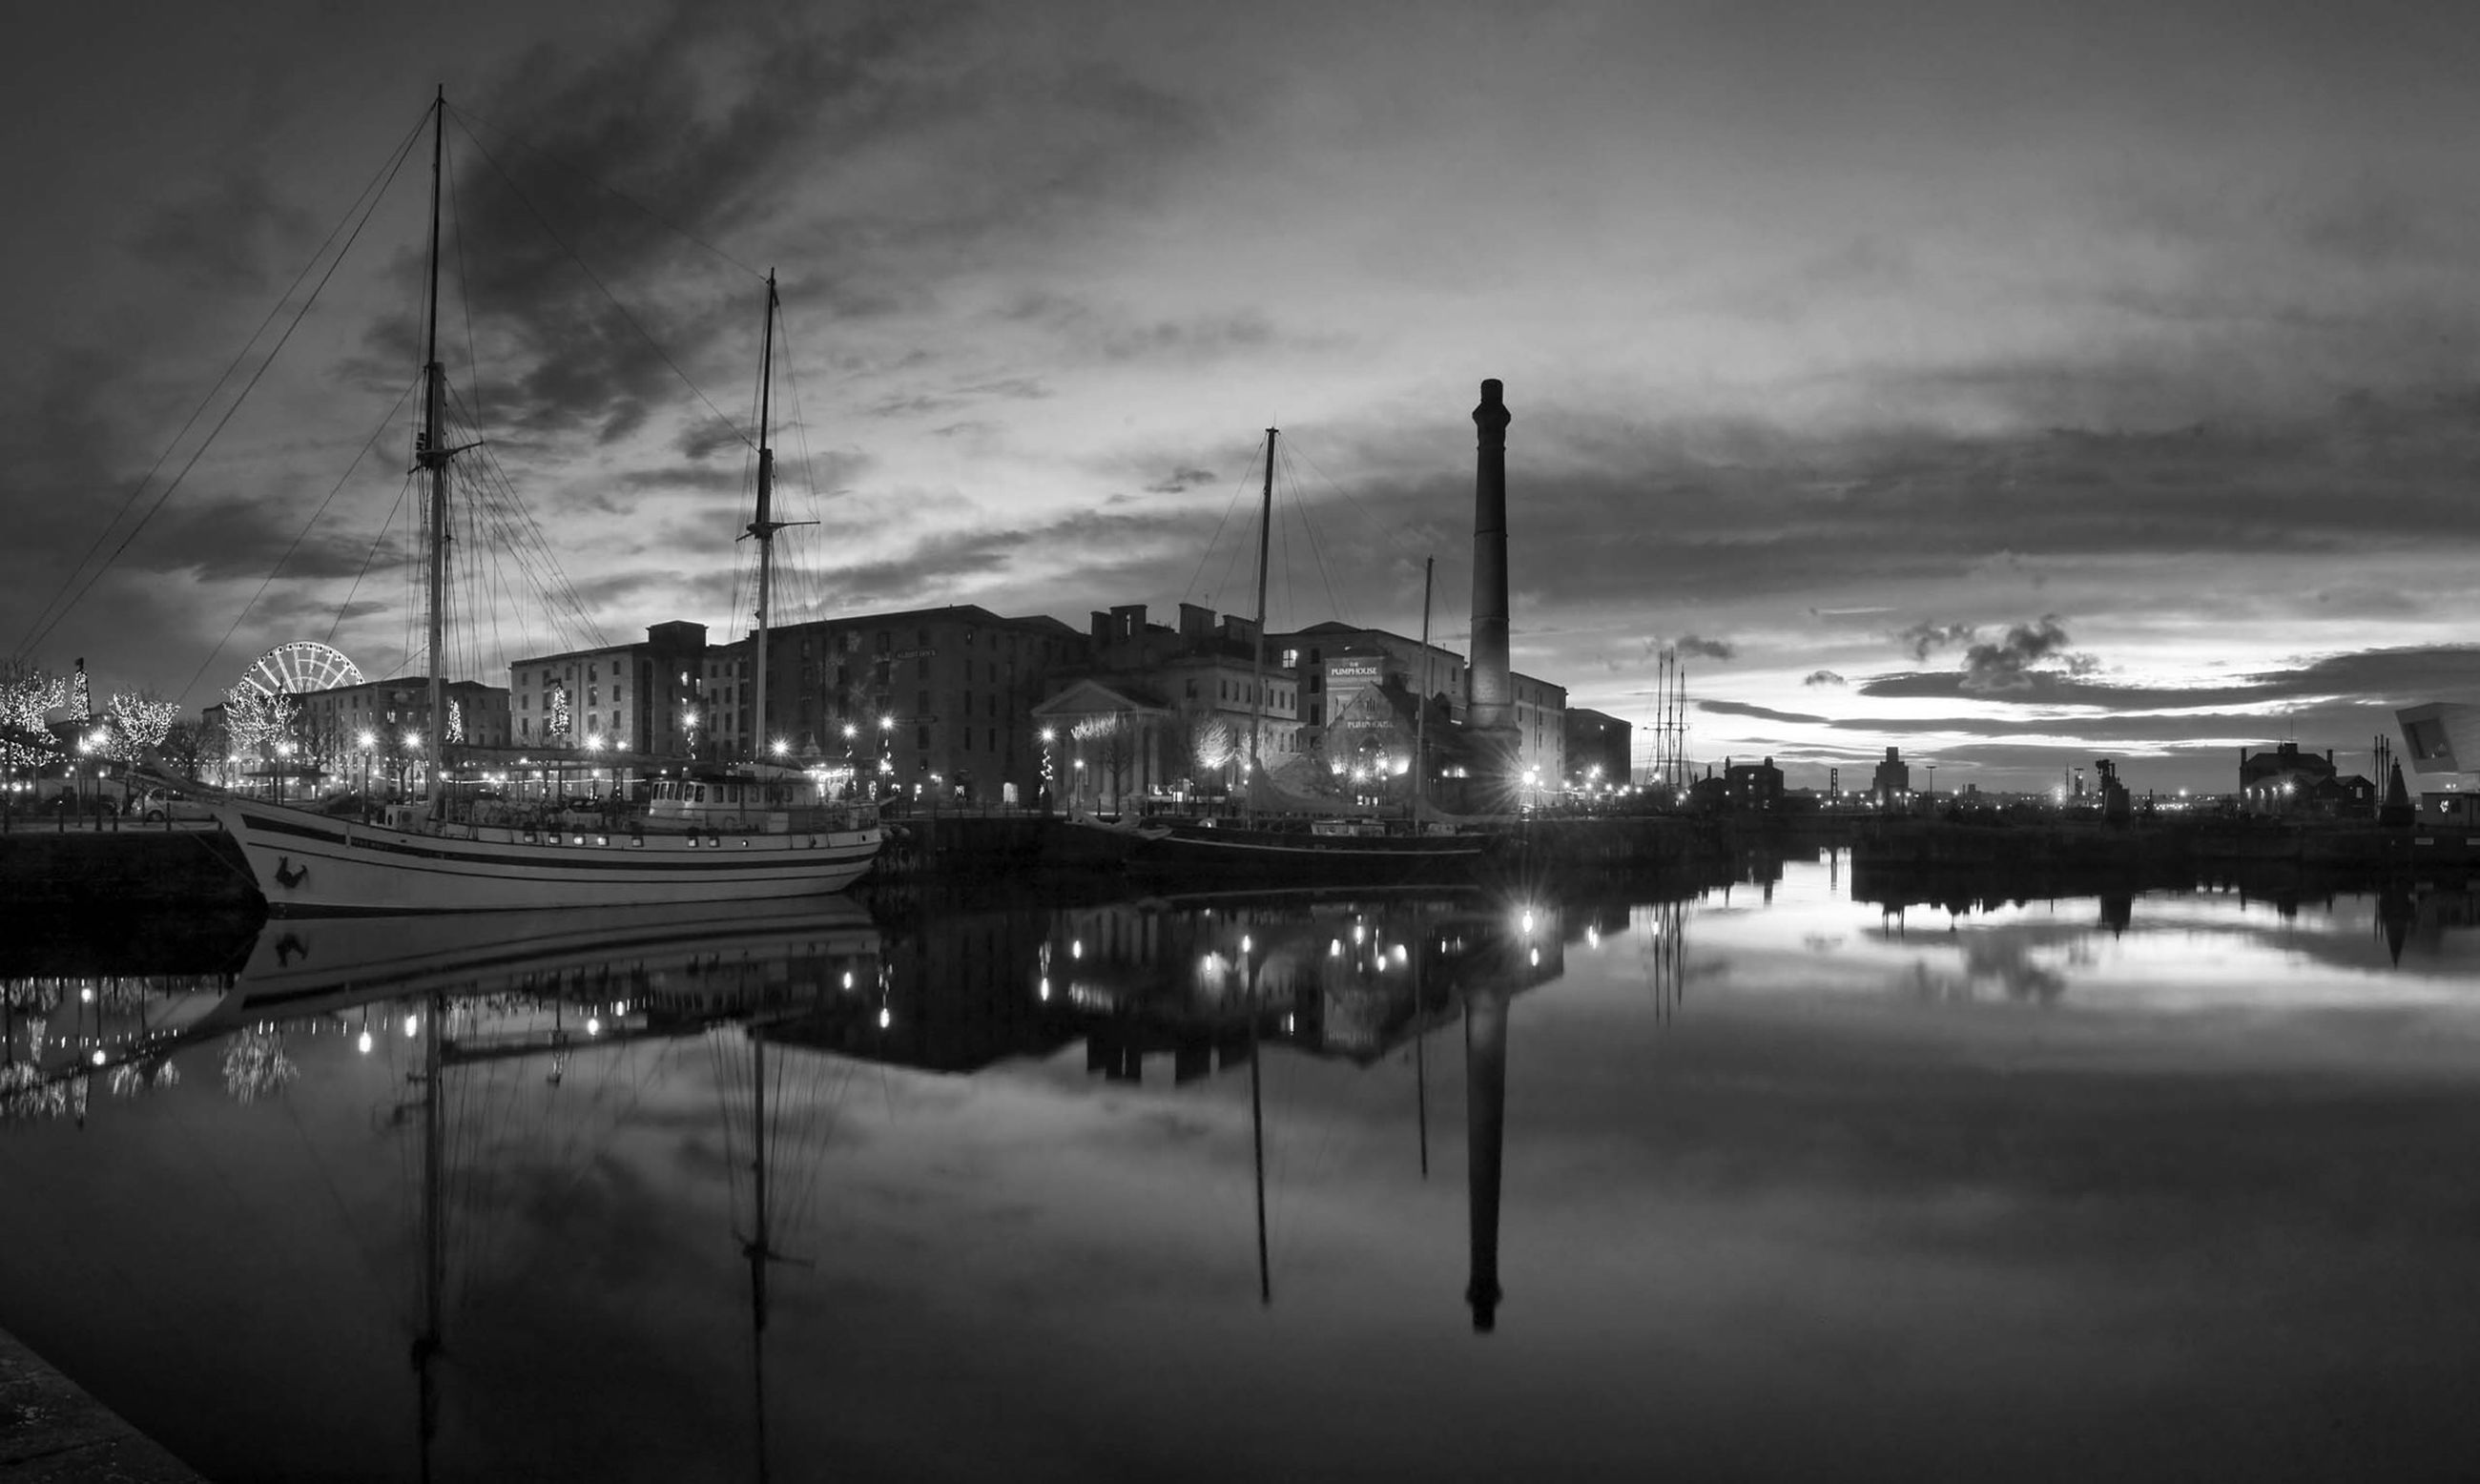 water, sky, reflection, cloud - sky, built structure, waterfront, architecture, transportation, building exterior, cloudy, harbor, illuminated, city, dusk, mode of transport, cloud, weather, river, moored, street light